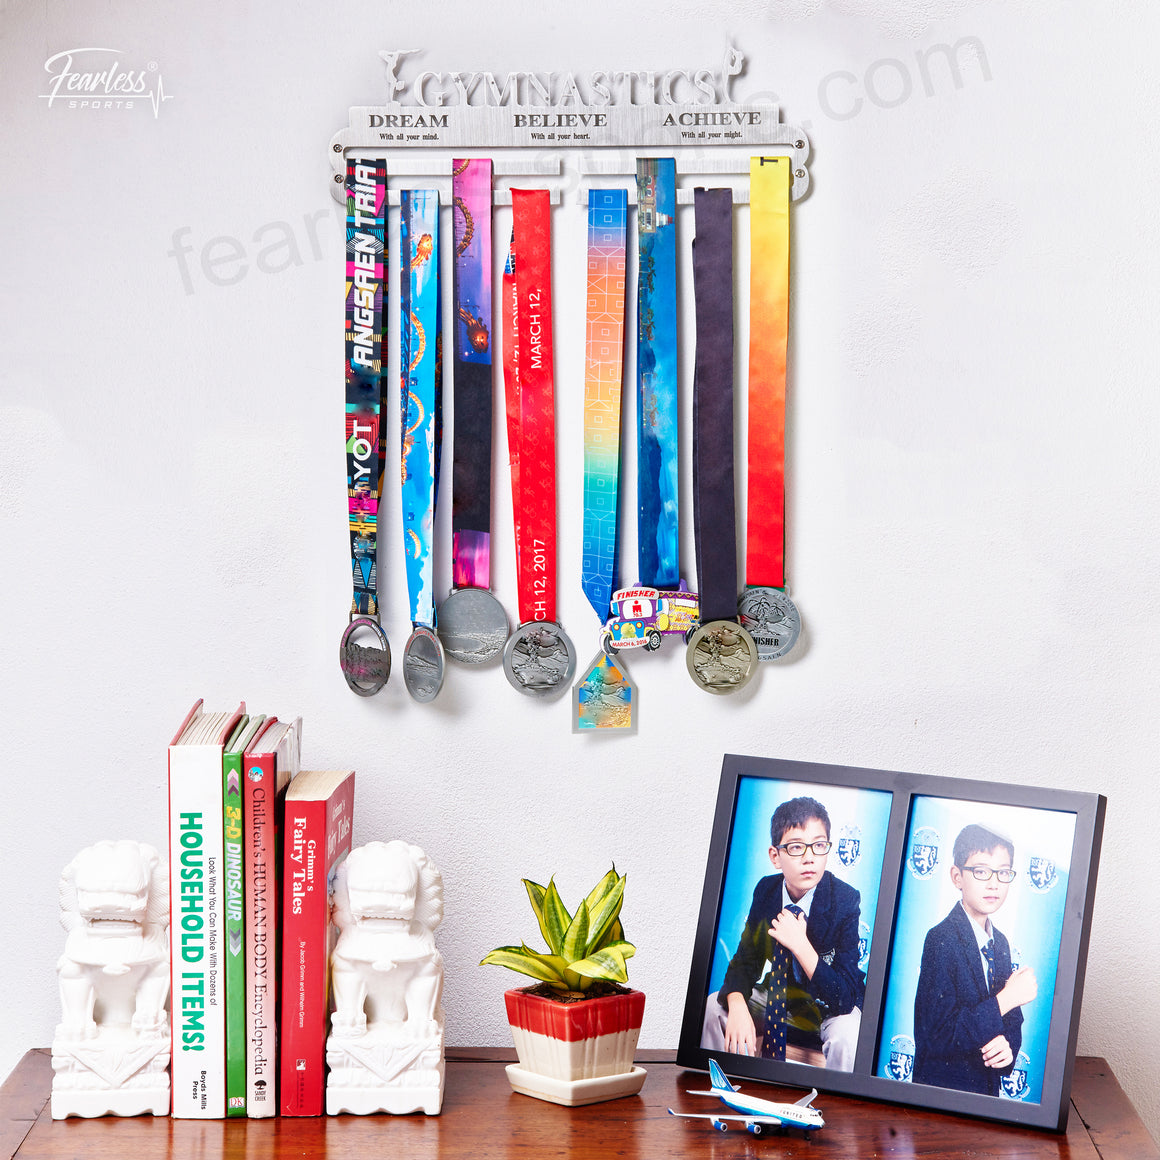 Gymnastics Girl Stainless Steel Sport Medal Display Hanger Medal Organizer ITM./ART.5187 - Fearless Sports